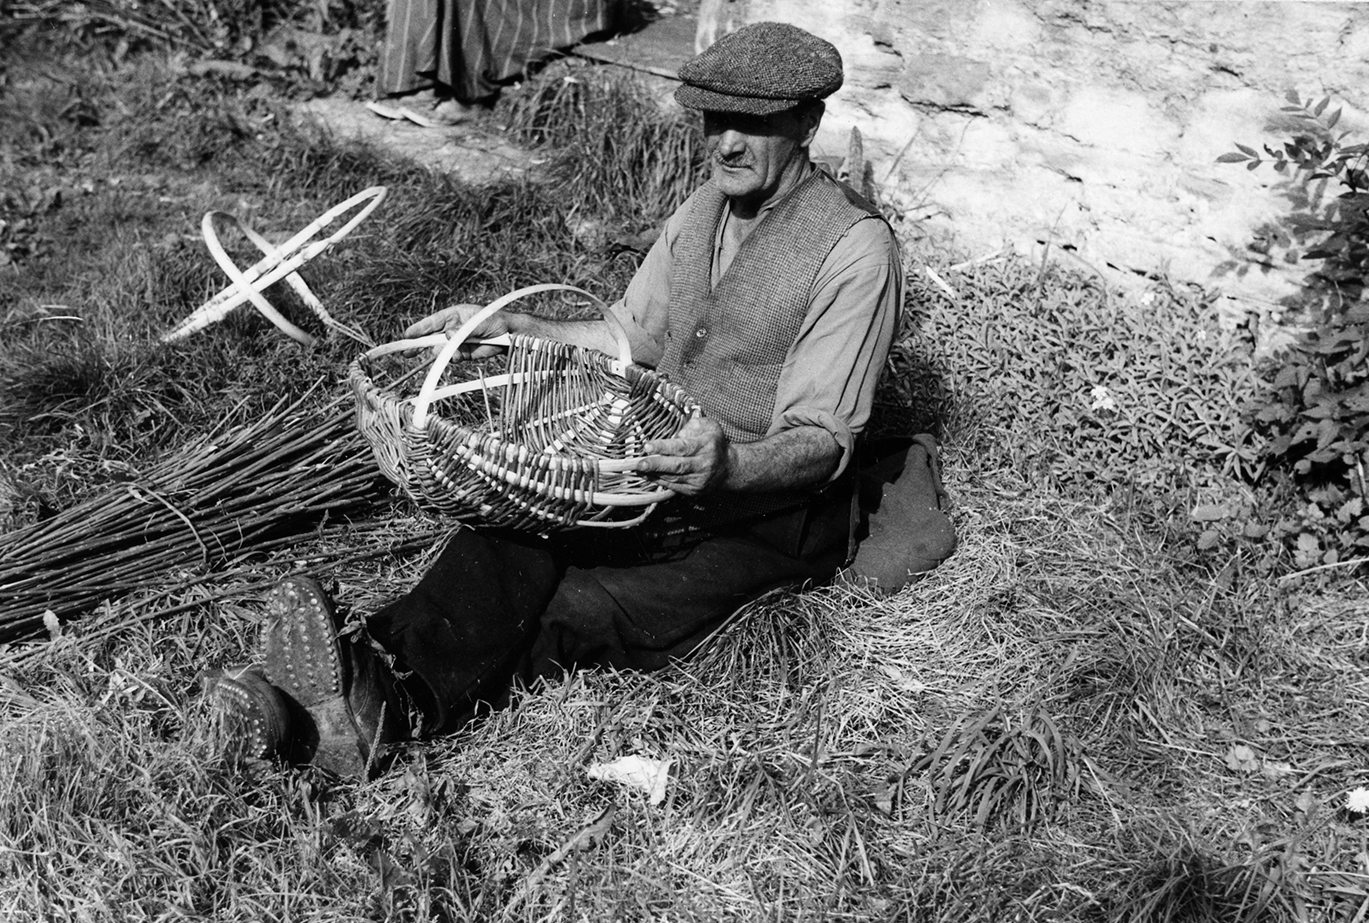 Tinker making a scull for potato gathering.1960 School of Scottish Studies, Kissling Archive